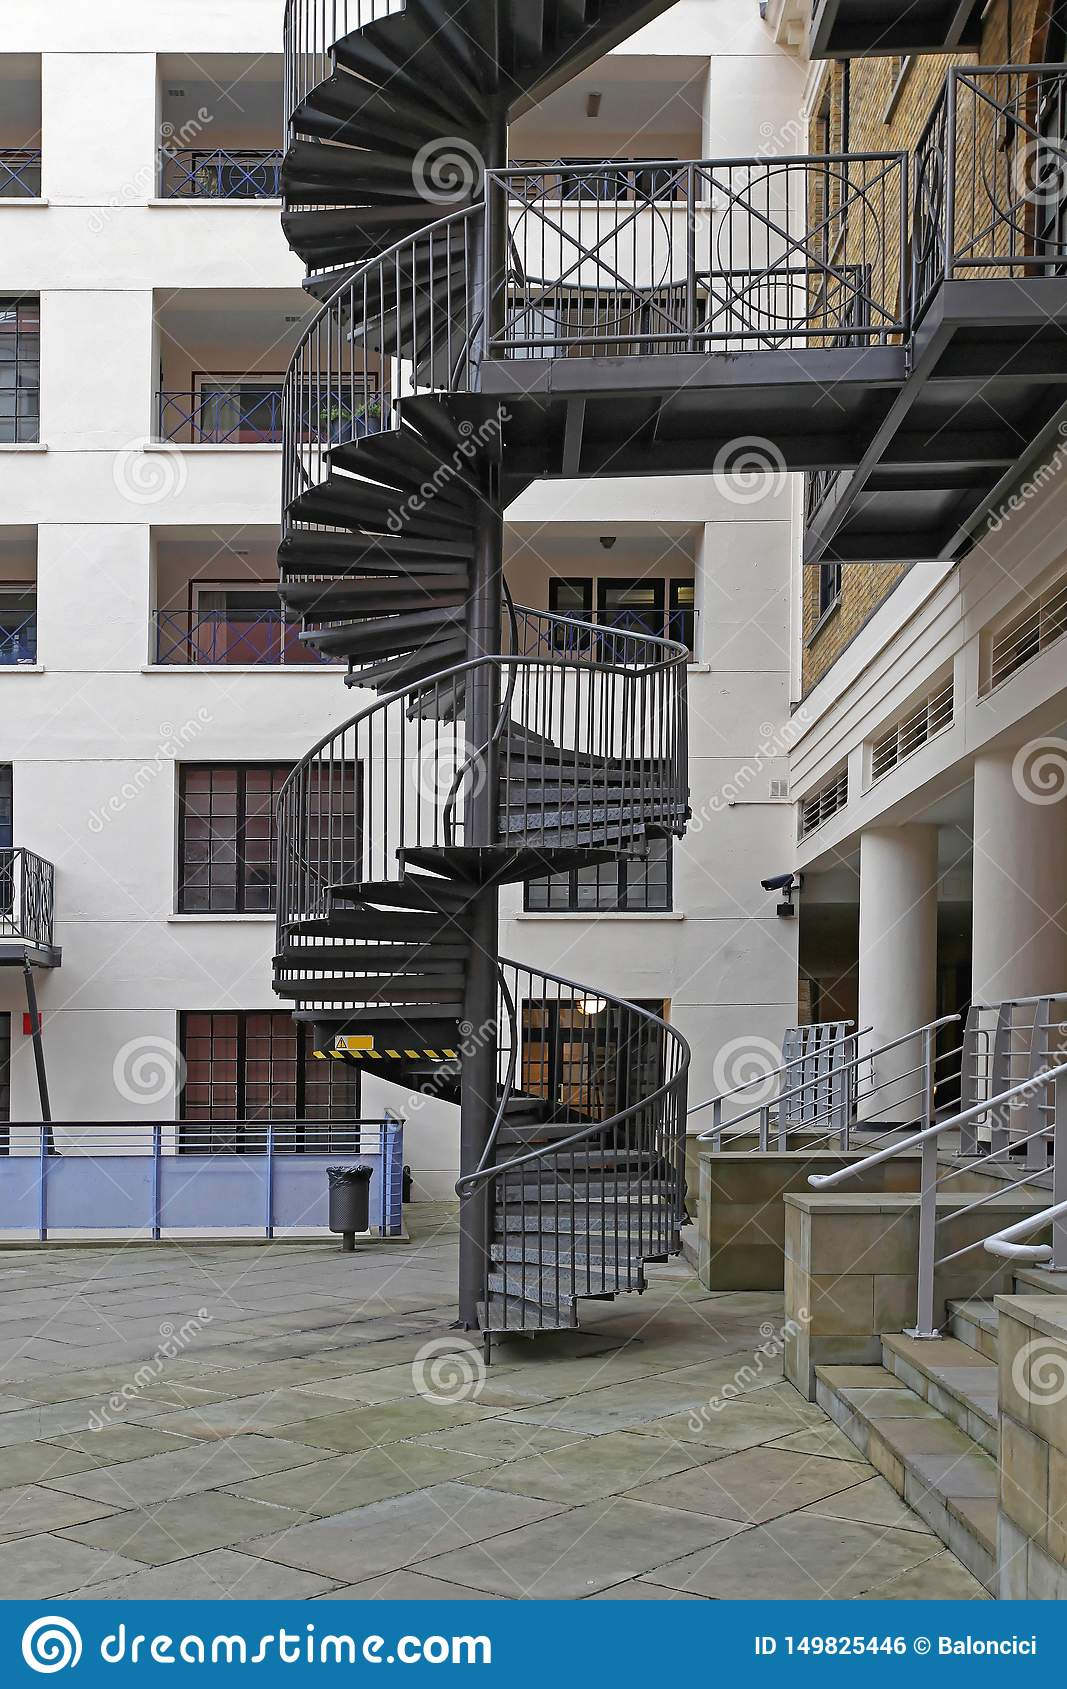 Spiral Staircase Stock Photo Image Of Steps Emergency 149825446